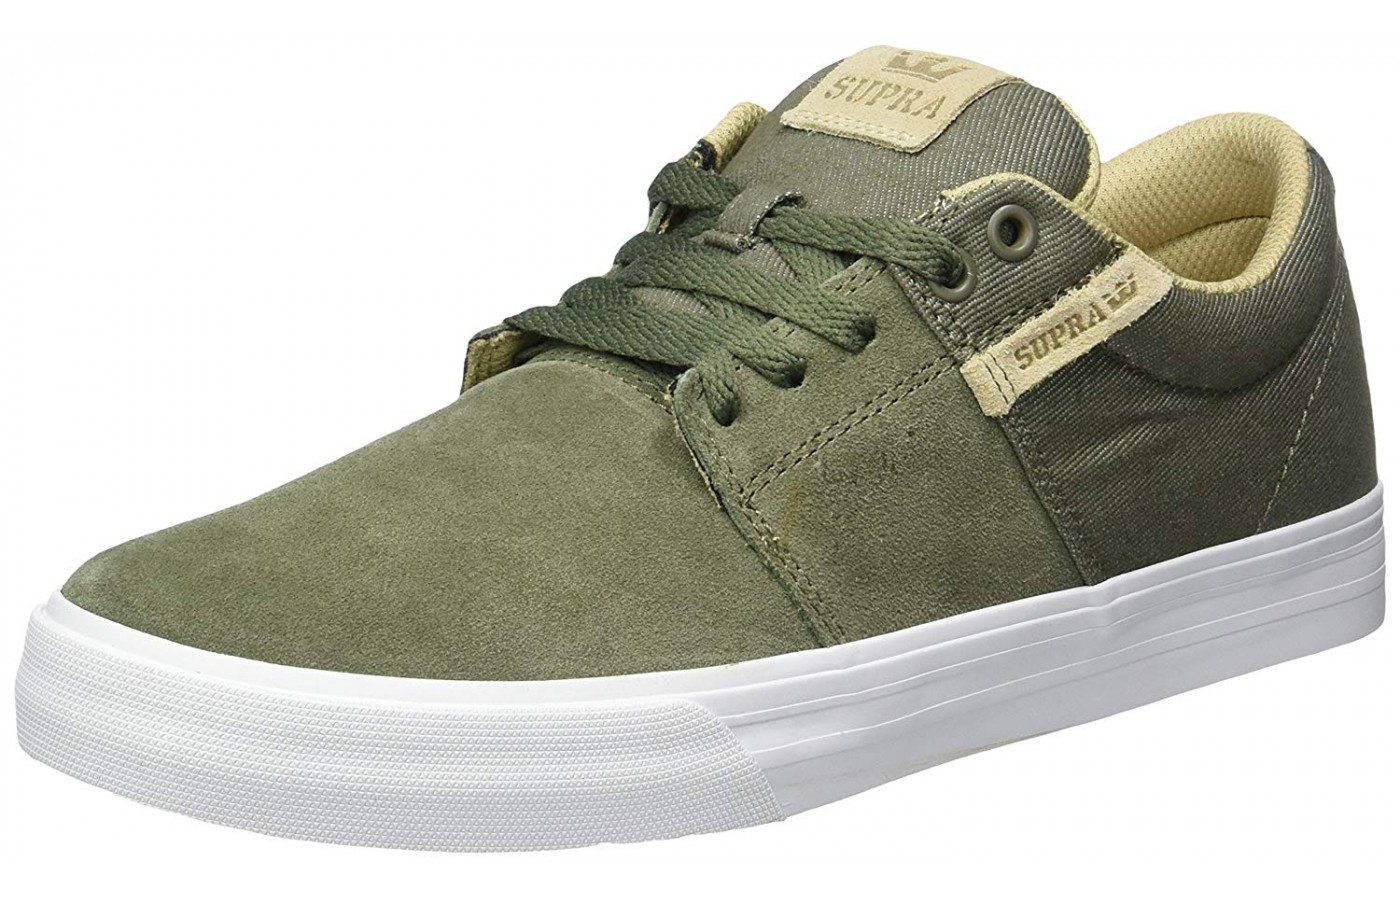 the Supra Stacks Vulc II shown from the front/side